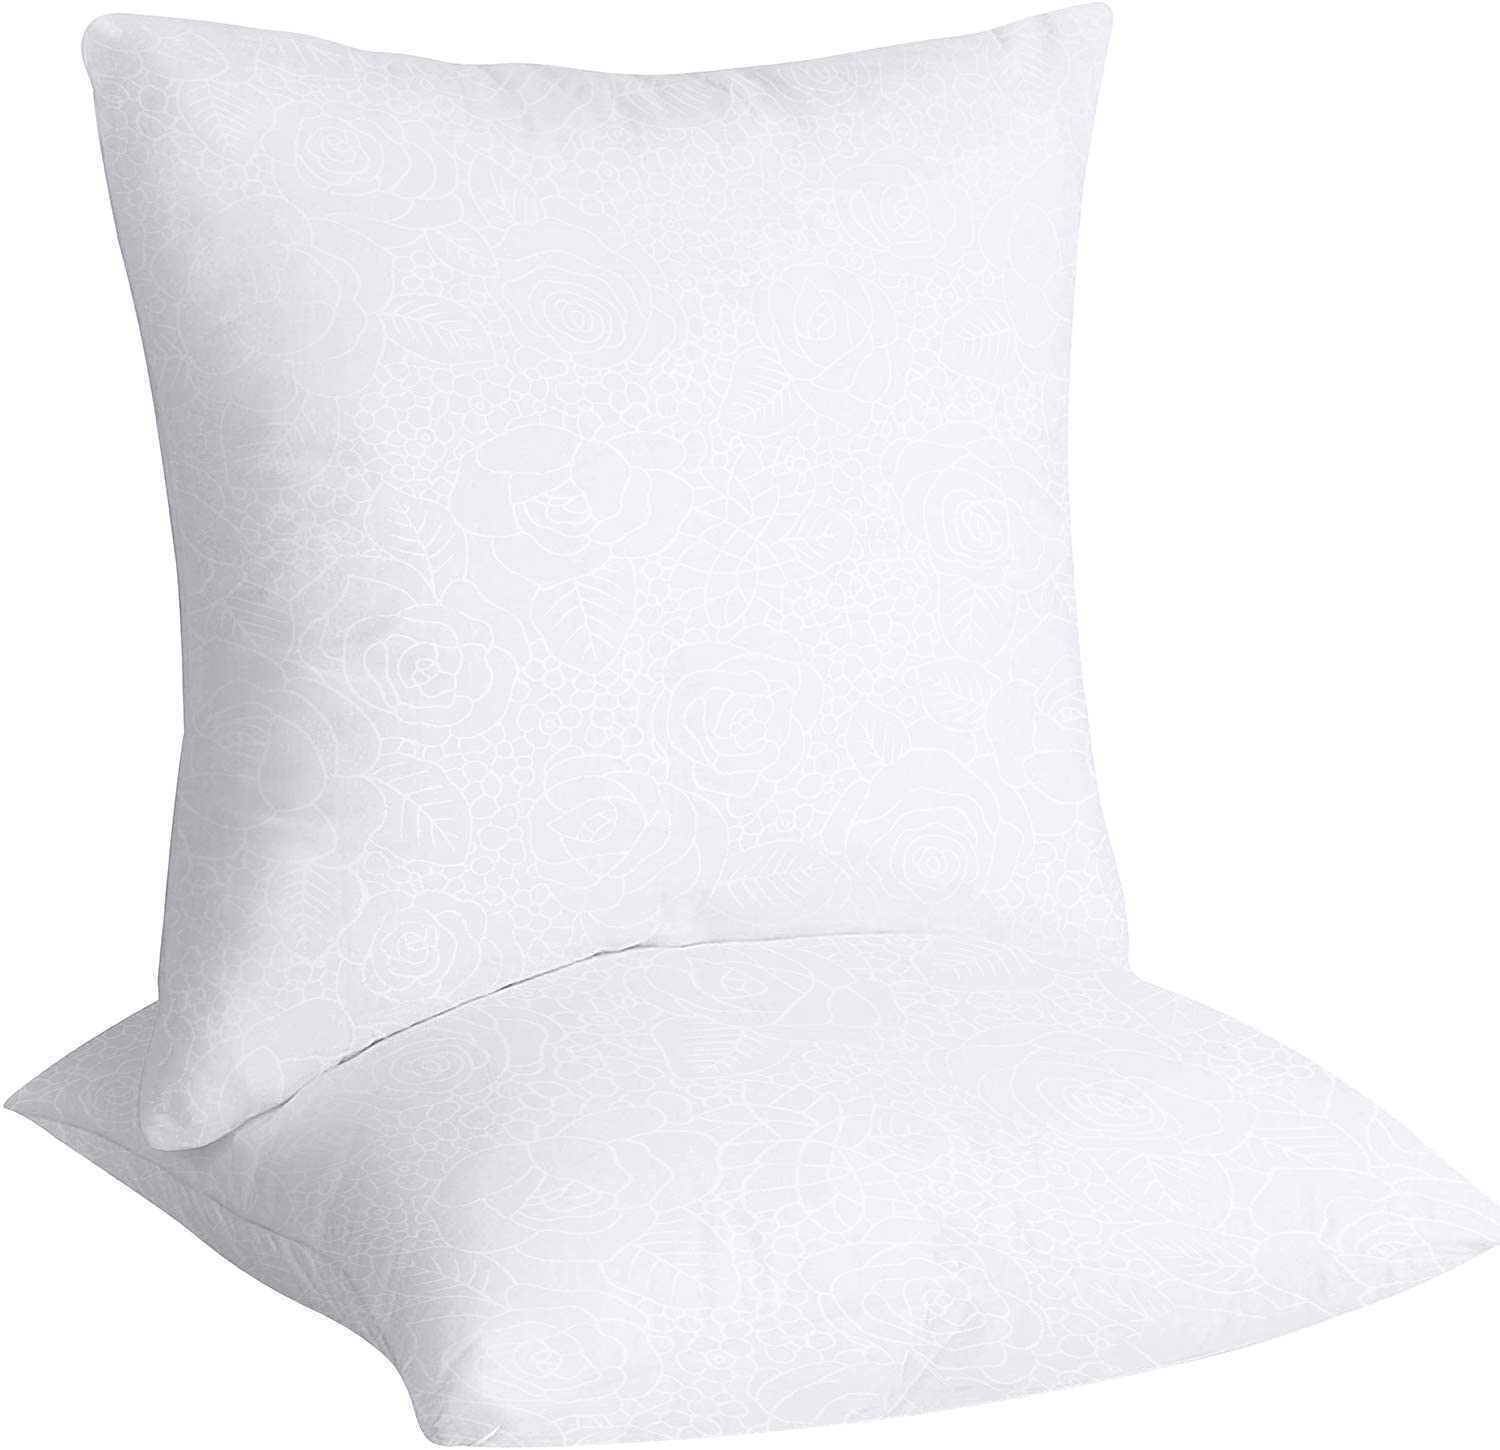 Youngnet Set of 2 Premium Hypoallergenic Polyester Stuffer Pillow Inserts Rose Pattern Sham Square Form Indoor Decorative Pillows 16